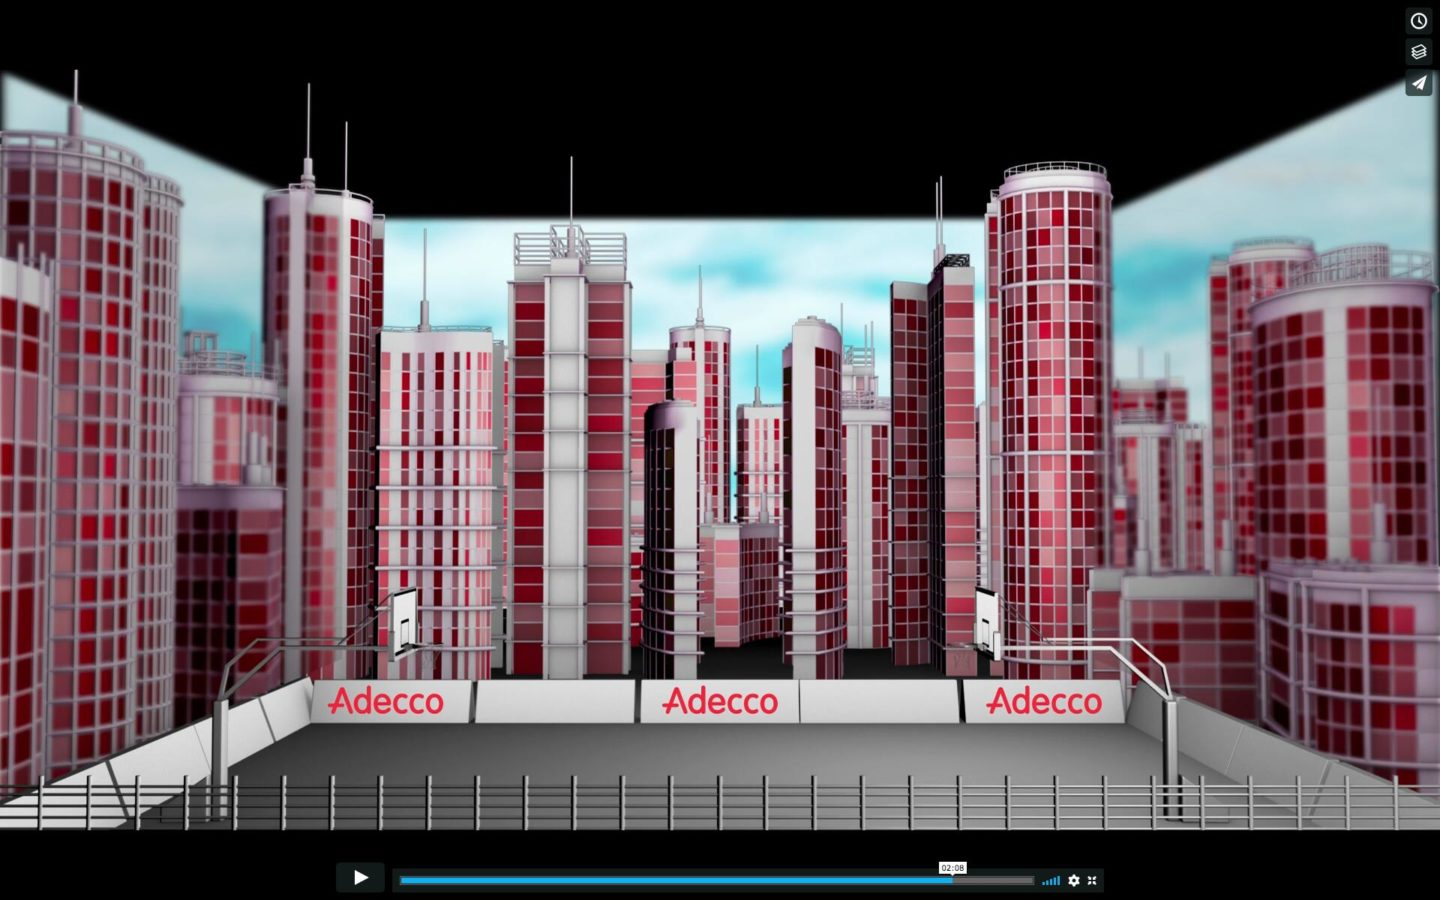 Mapping Adecco